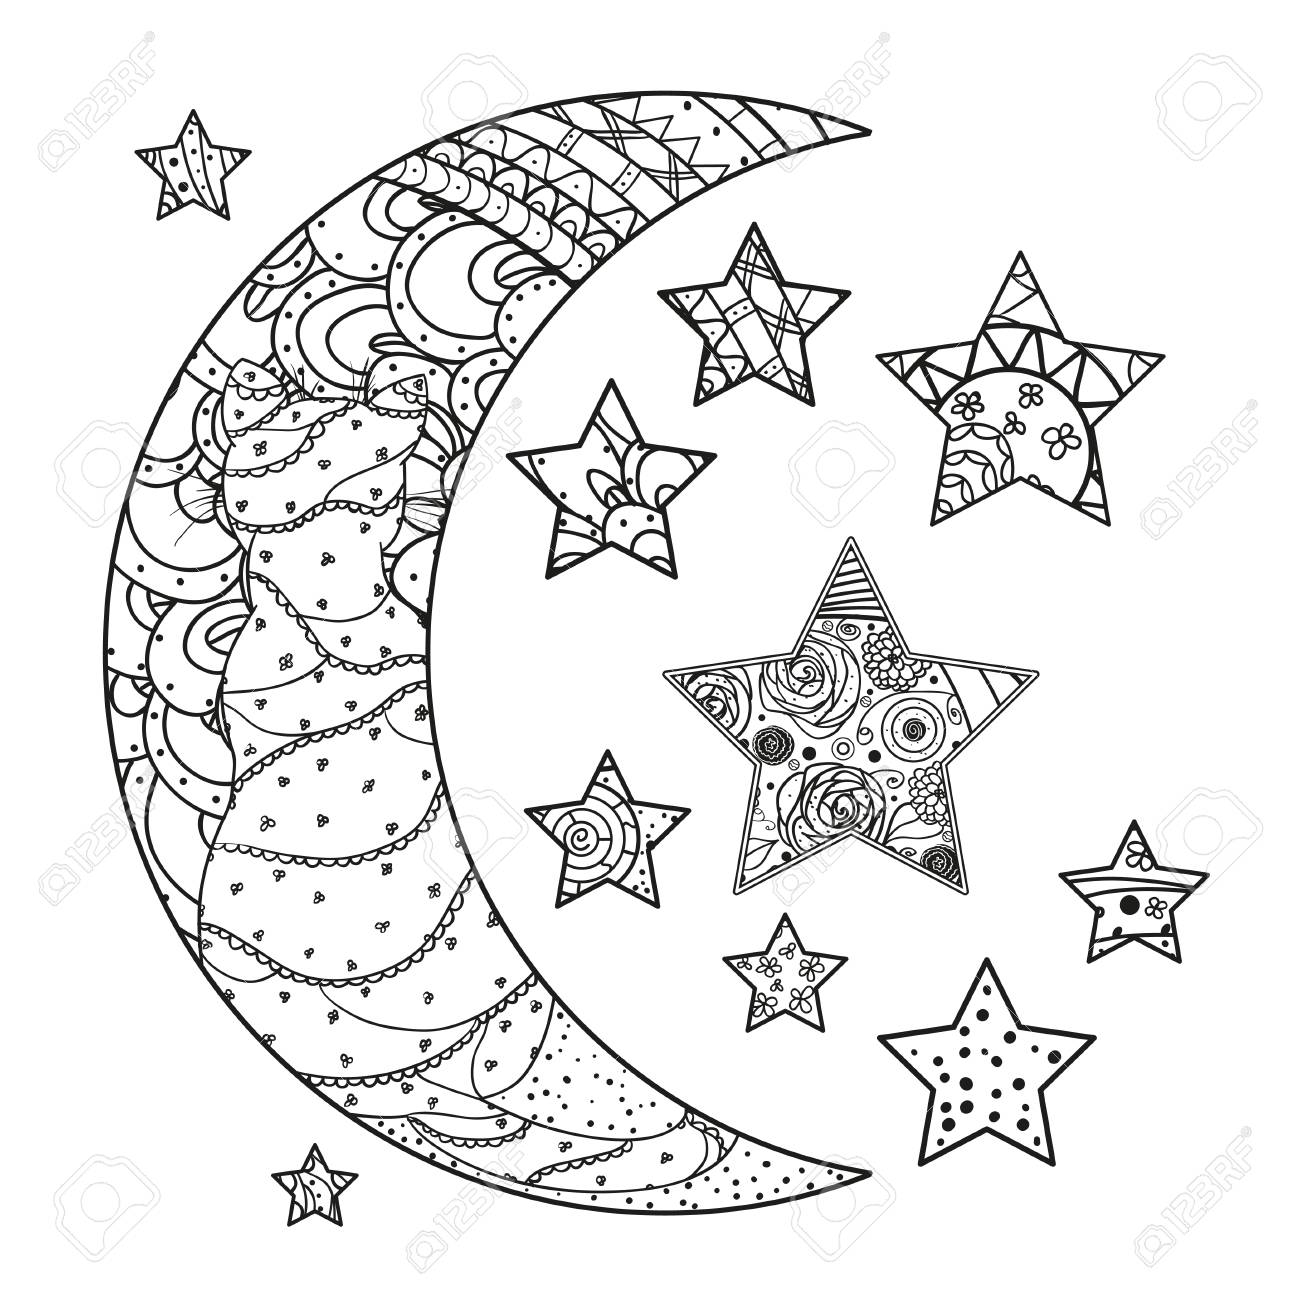 Half moon and stars with abstract patterns isolated on white half moon and stars with abstract patterns isolated on white background stock vector 85774327 biocorpaavc